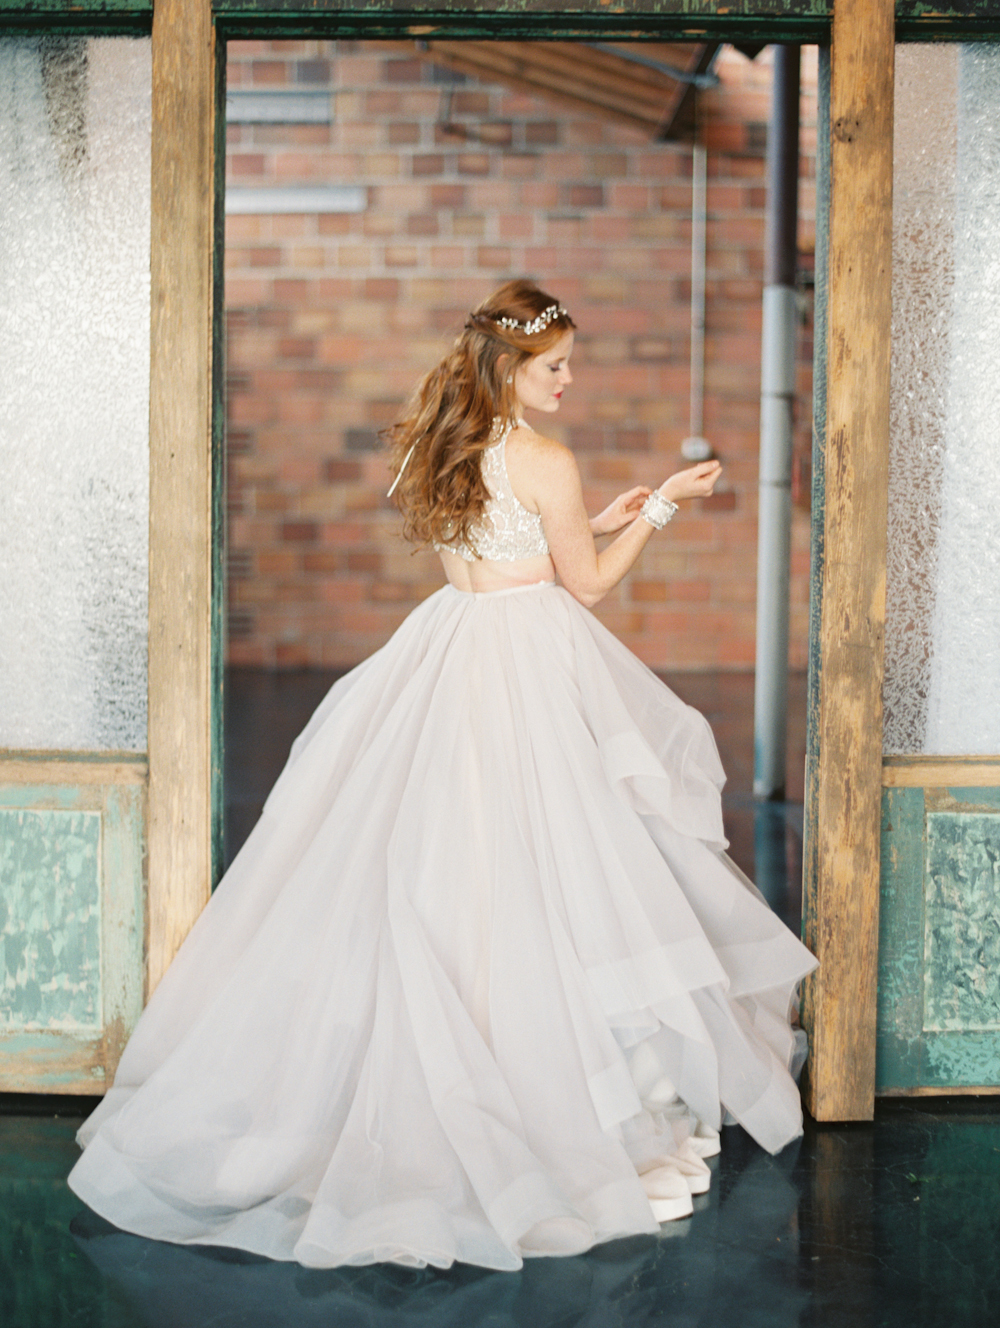 Mermaid Wedding Styled Shoot Bride Back